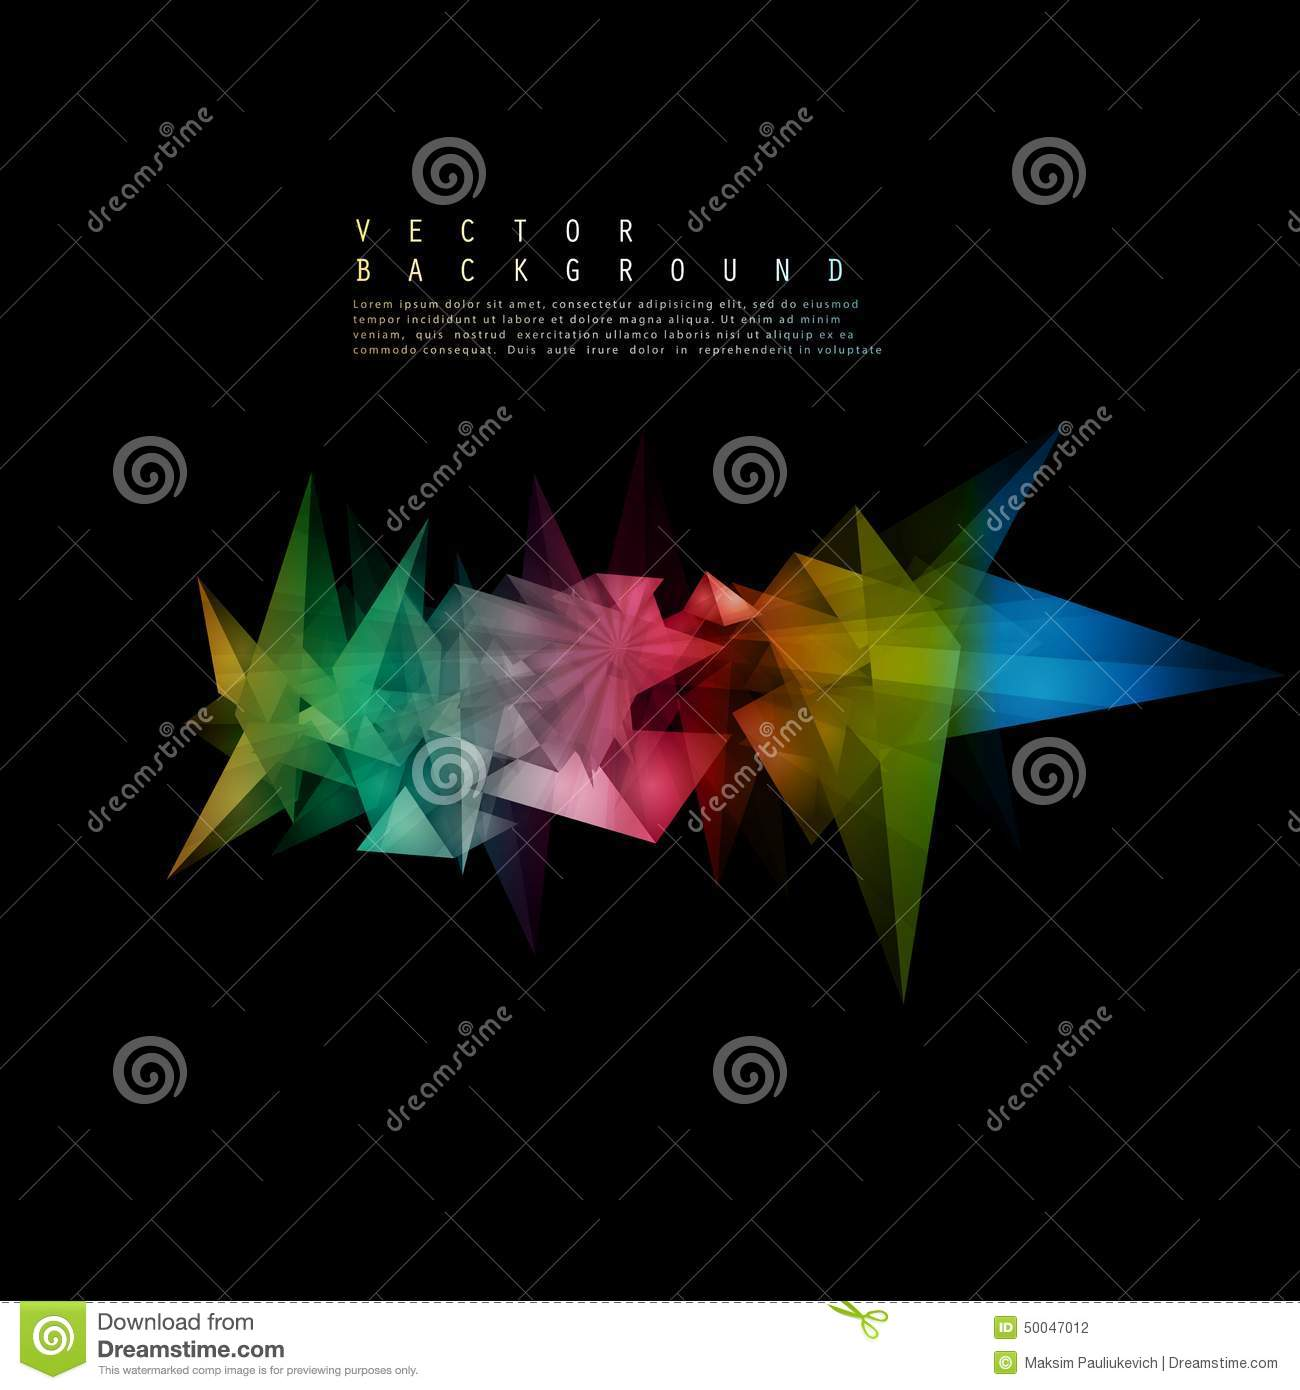 Vector Triangles pattern background